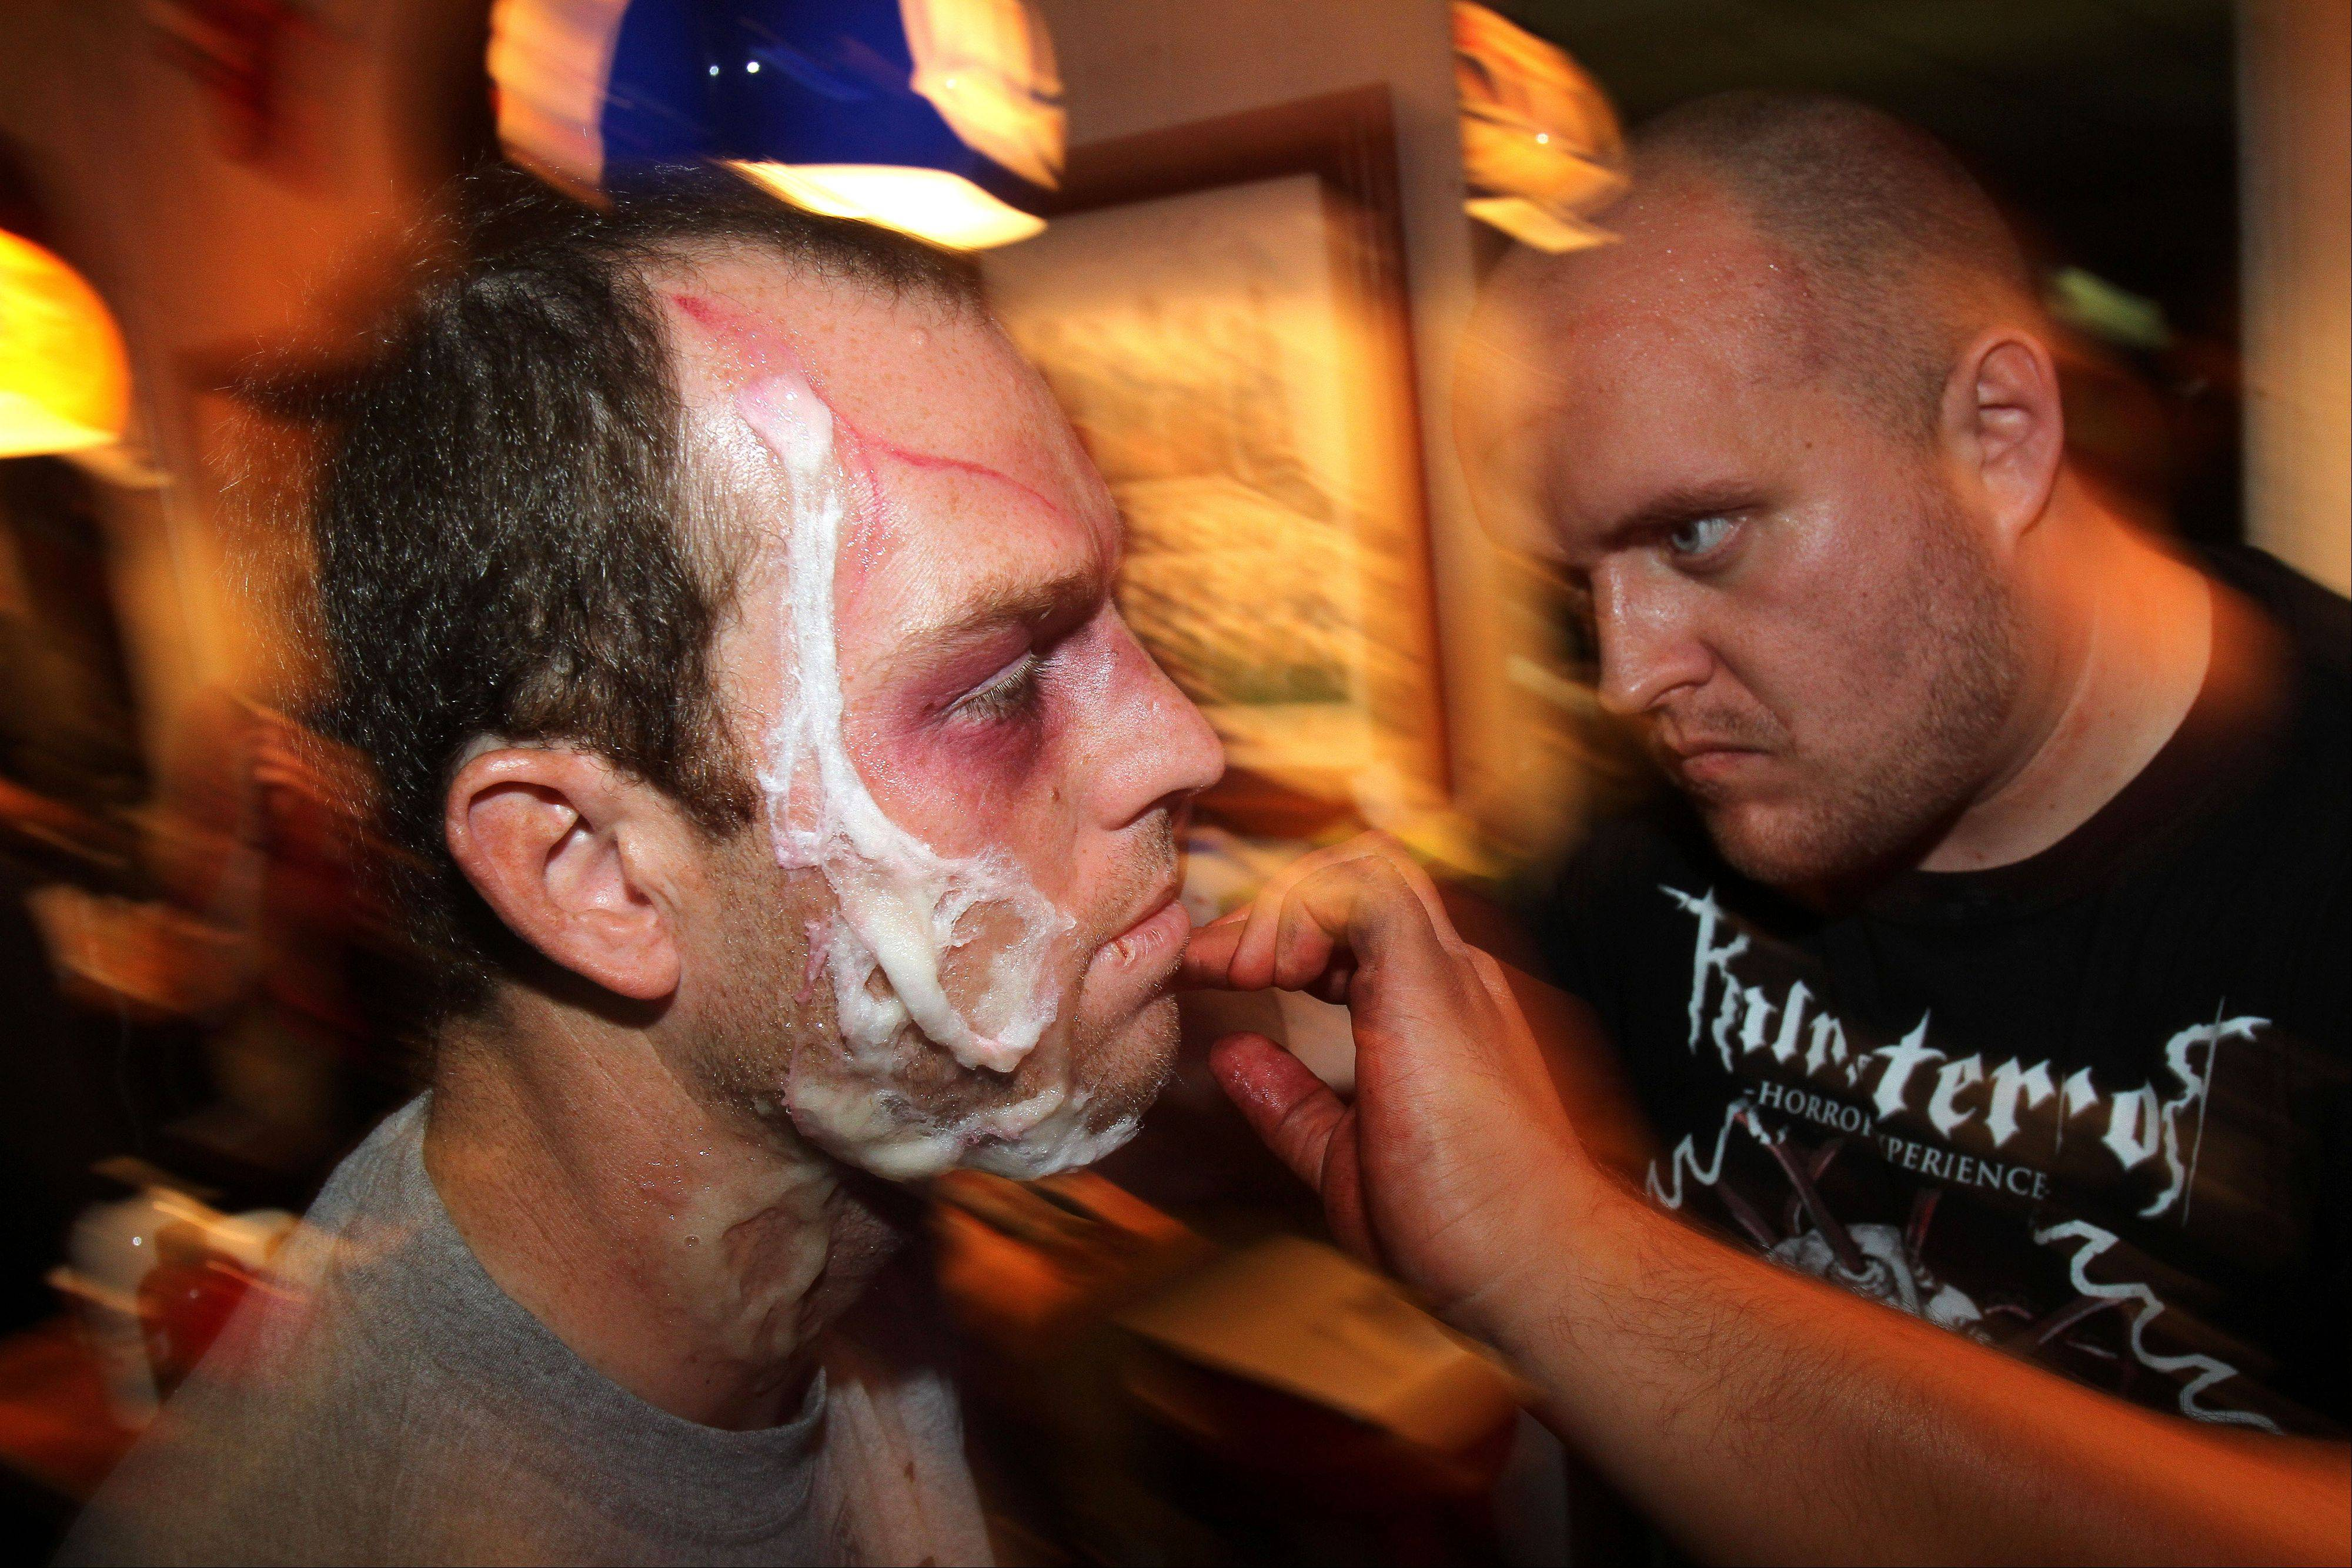 Makeup artist Ken Svitak of Round Lake turns Bears kicker Robbie Gould into a monster on Monday at the Realm of Terror haunted house at Kristof's Family Fun Center in Round Lake Beach.